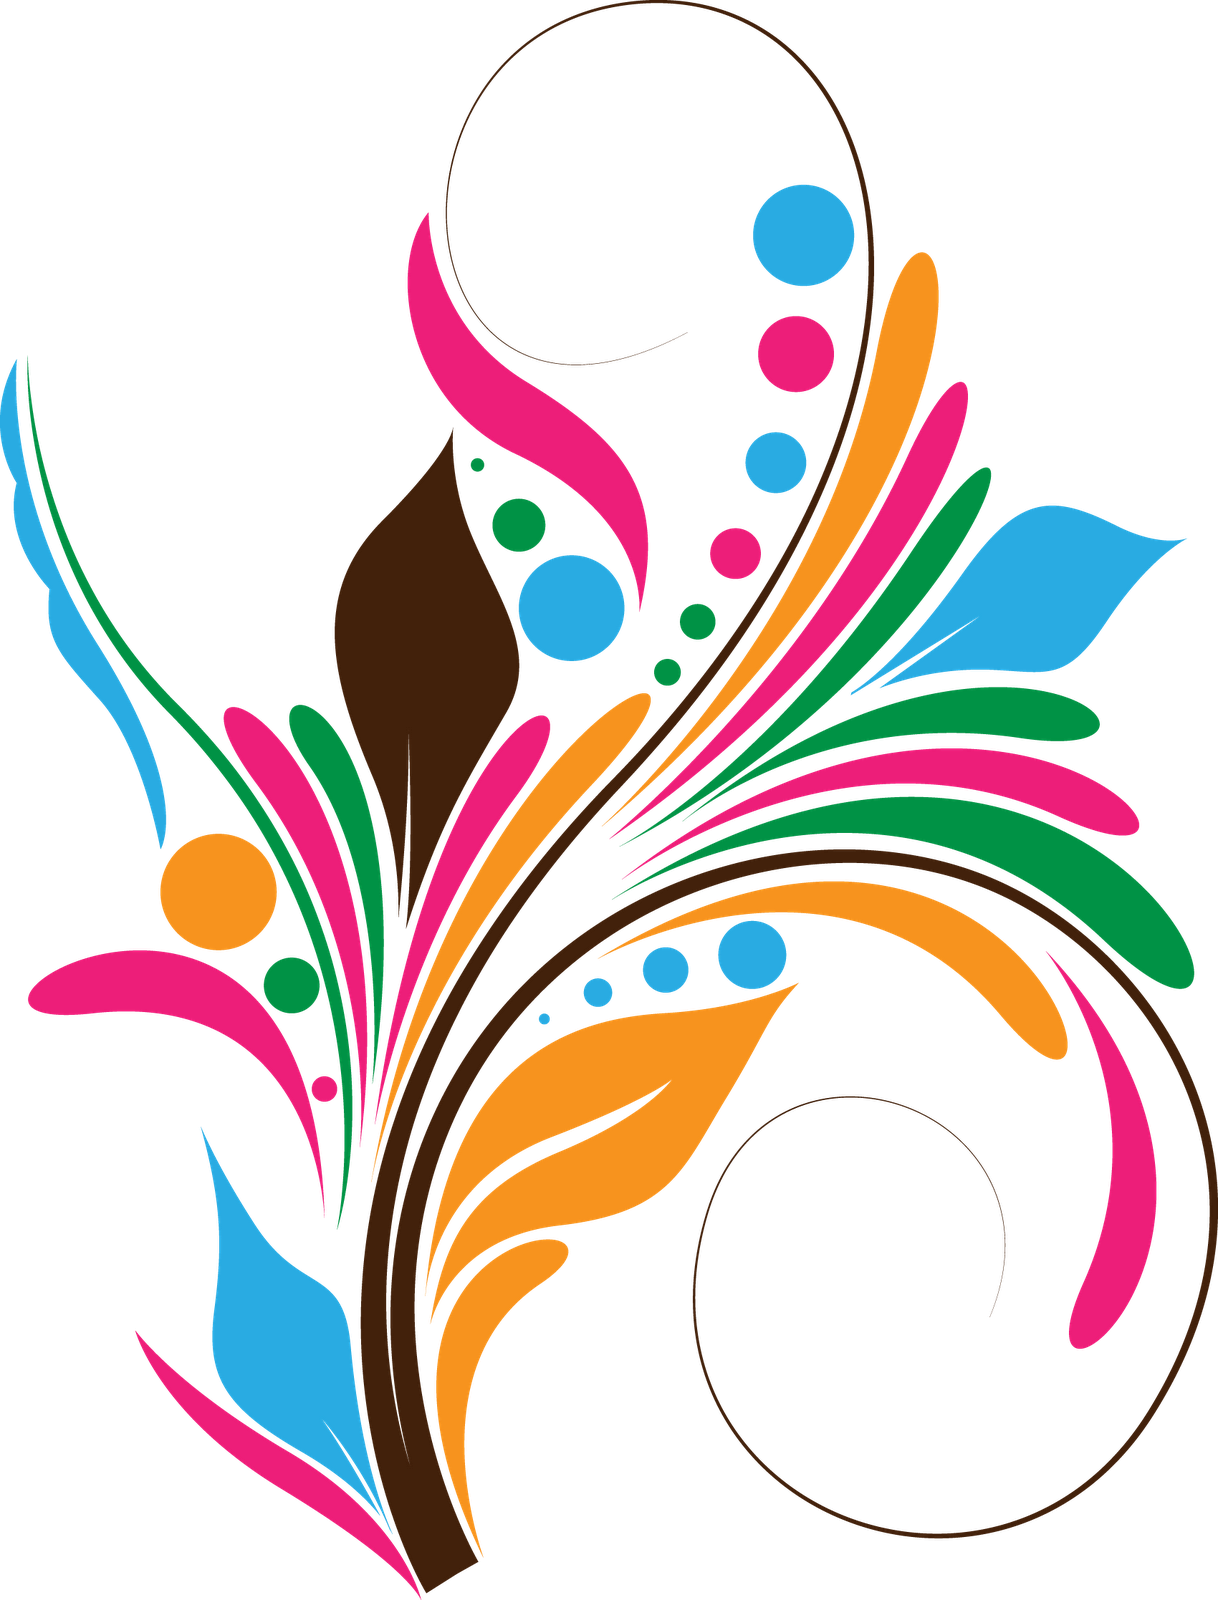 Vector flower design png. Download free coreldraw tutorials